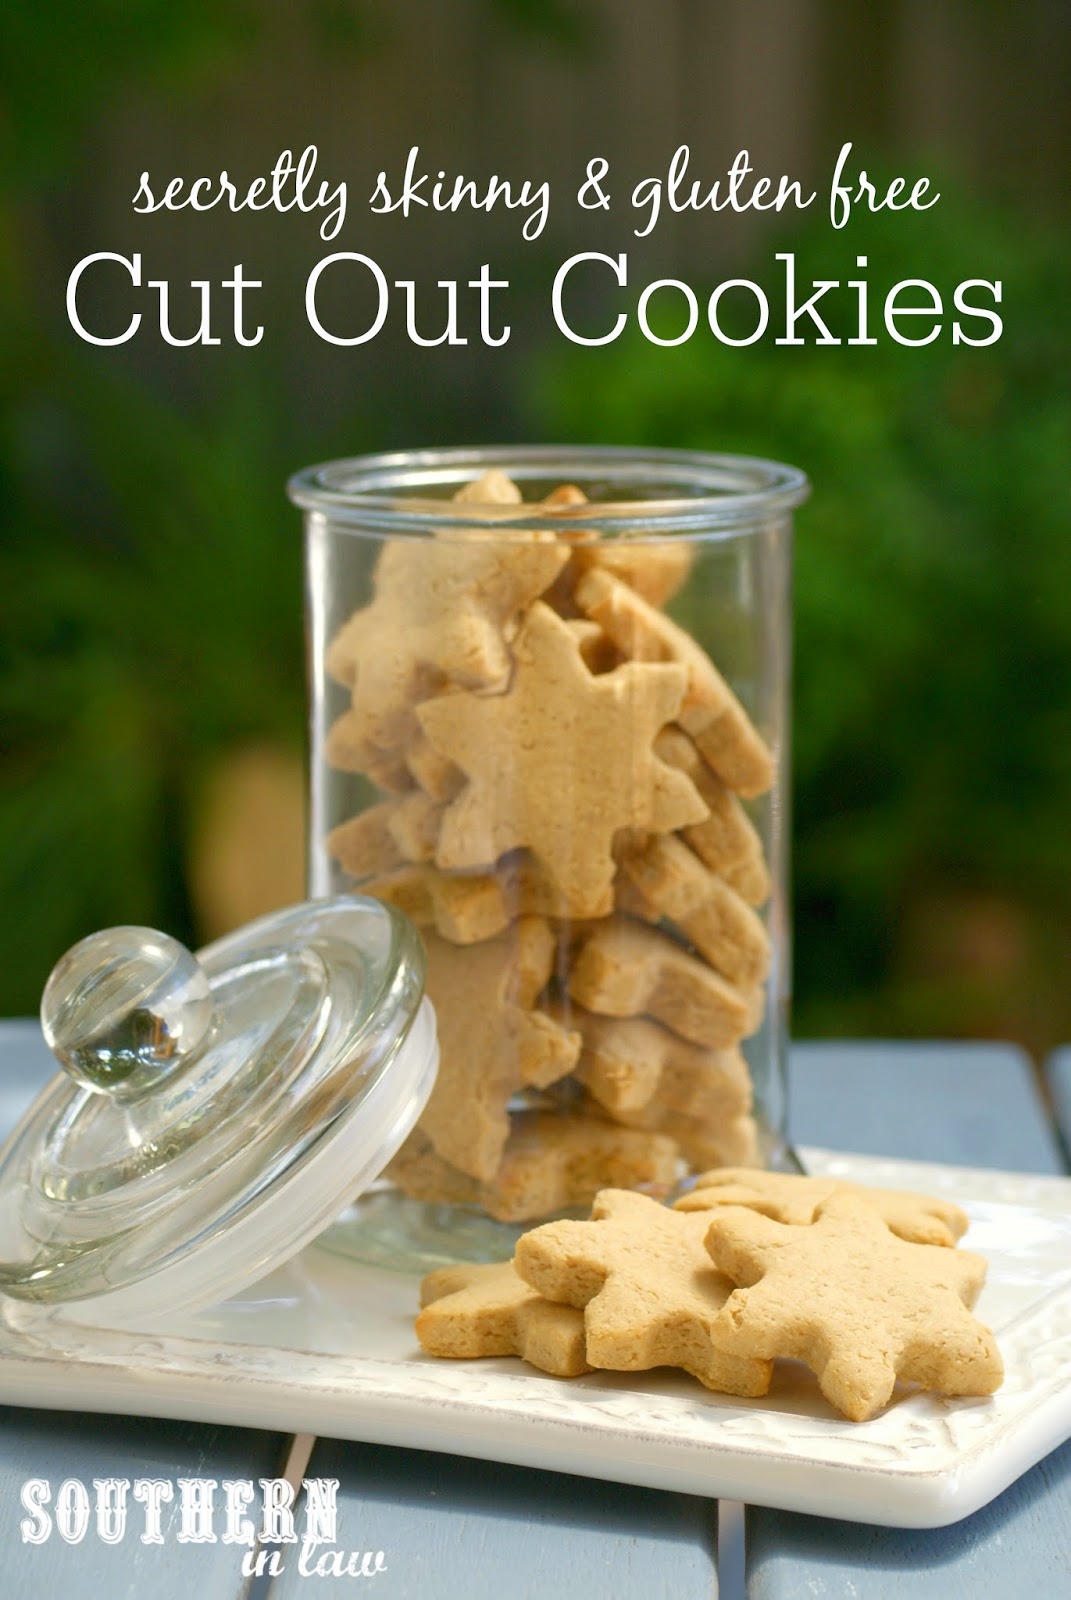 Secretly Skinny and Gluten Free Cutout Cookies Recipe - Healthy Christmas Cookies Recipes, Low Fat, Low Sugar, Gluten Free